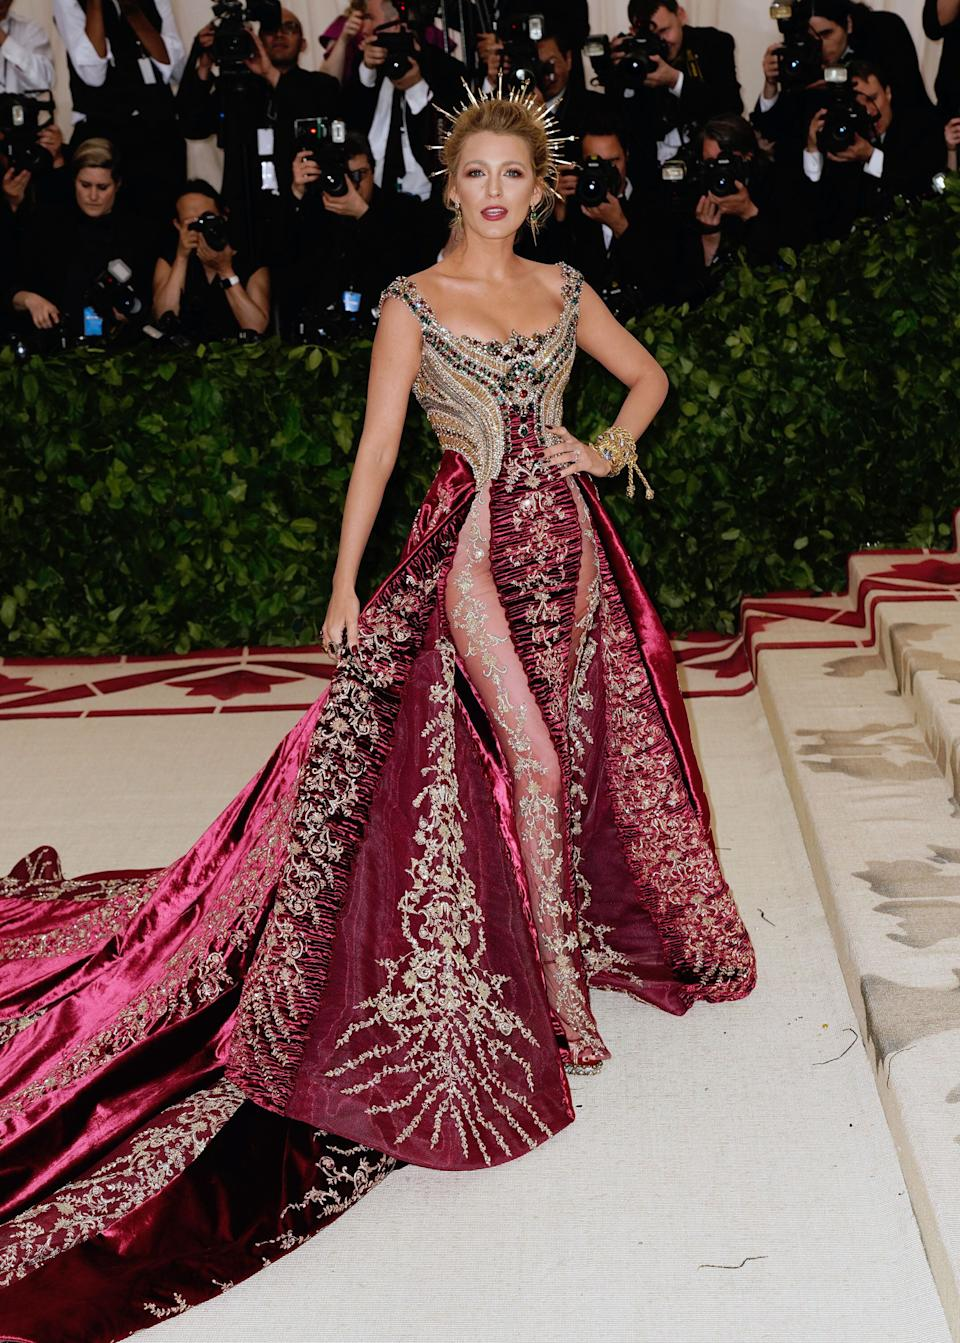 Blake Lively donned a show-stopping gown for the 2018 Met Gala. Image: Getty